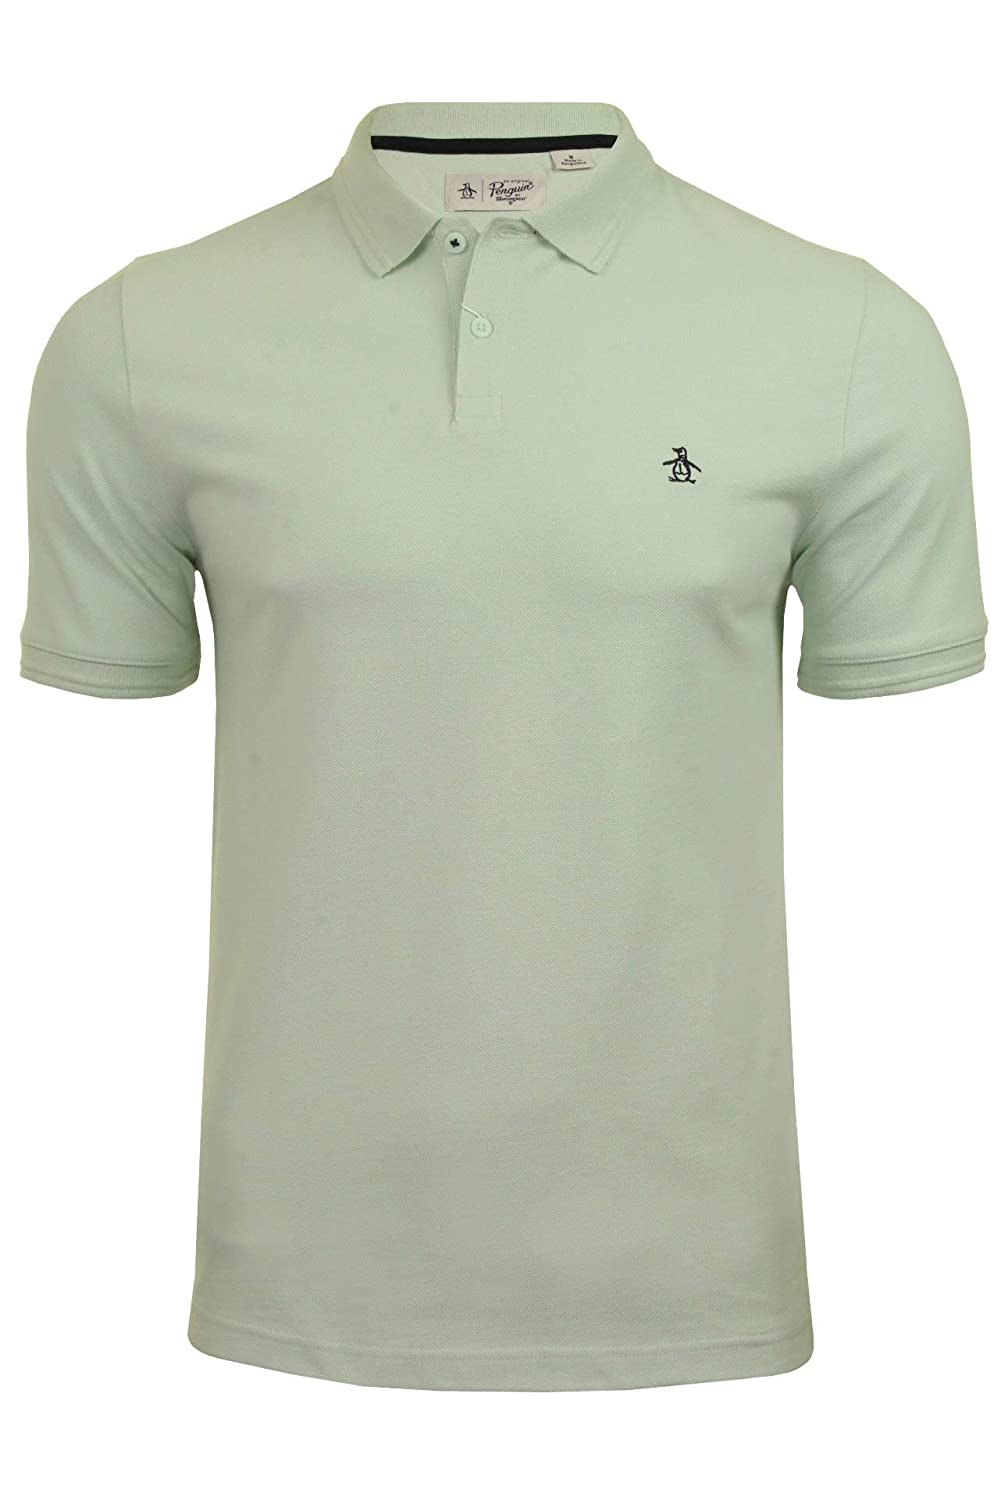 ORIGINAL PENGUIN Raised Rib Polo Shirt Hombre: Amazon.es: Ropa y ...